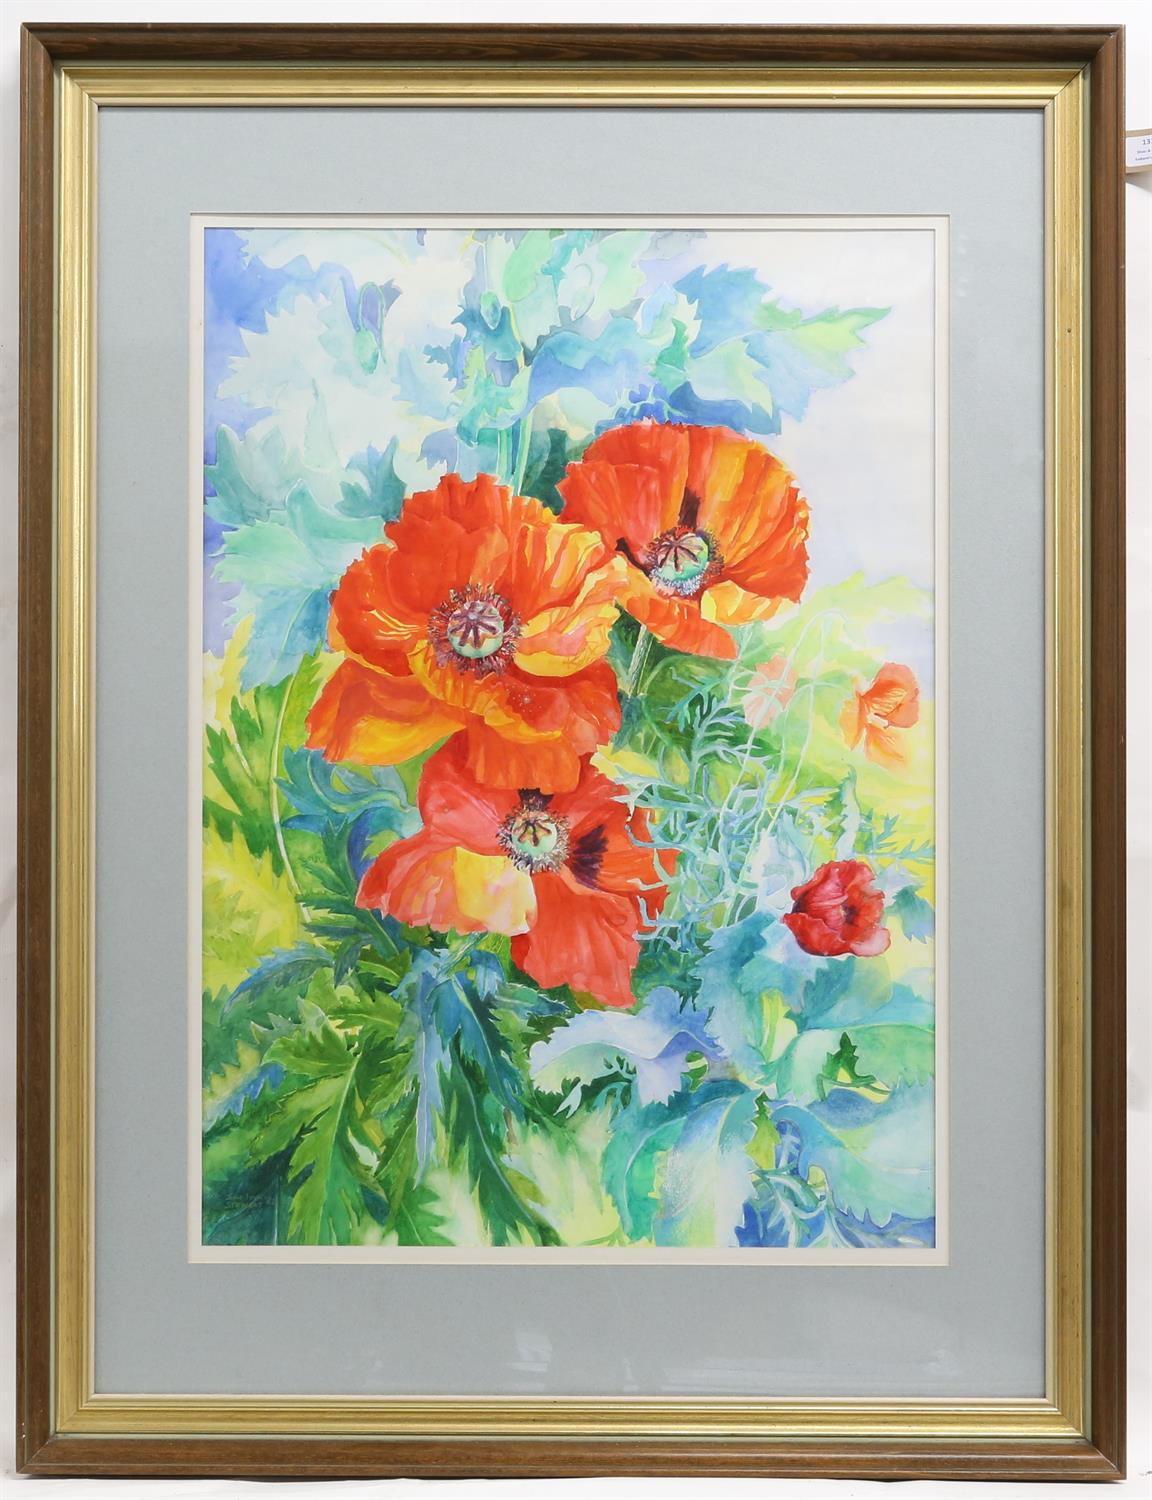 John Ivor Stewart (British, 1936-2017), poppies, signed and dated '82, watercolour, 71cm x 50cm, - Image 2 of 3